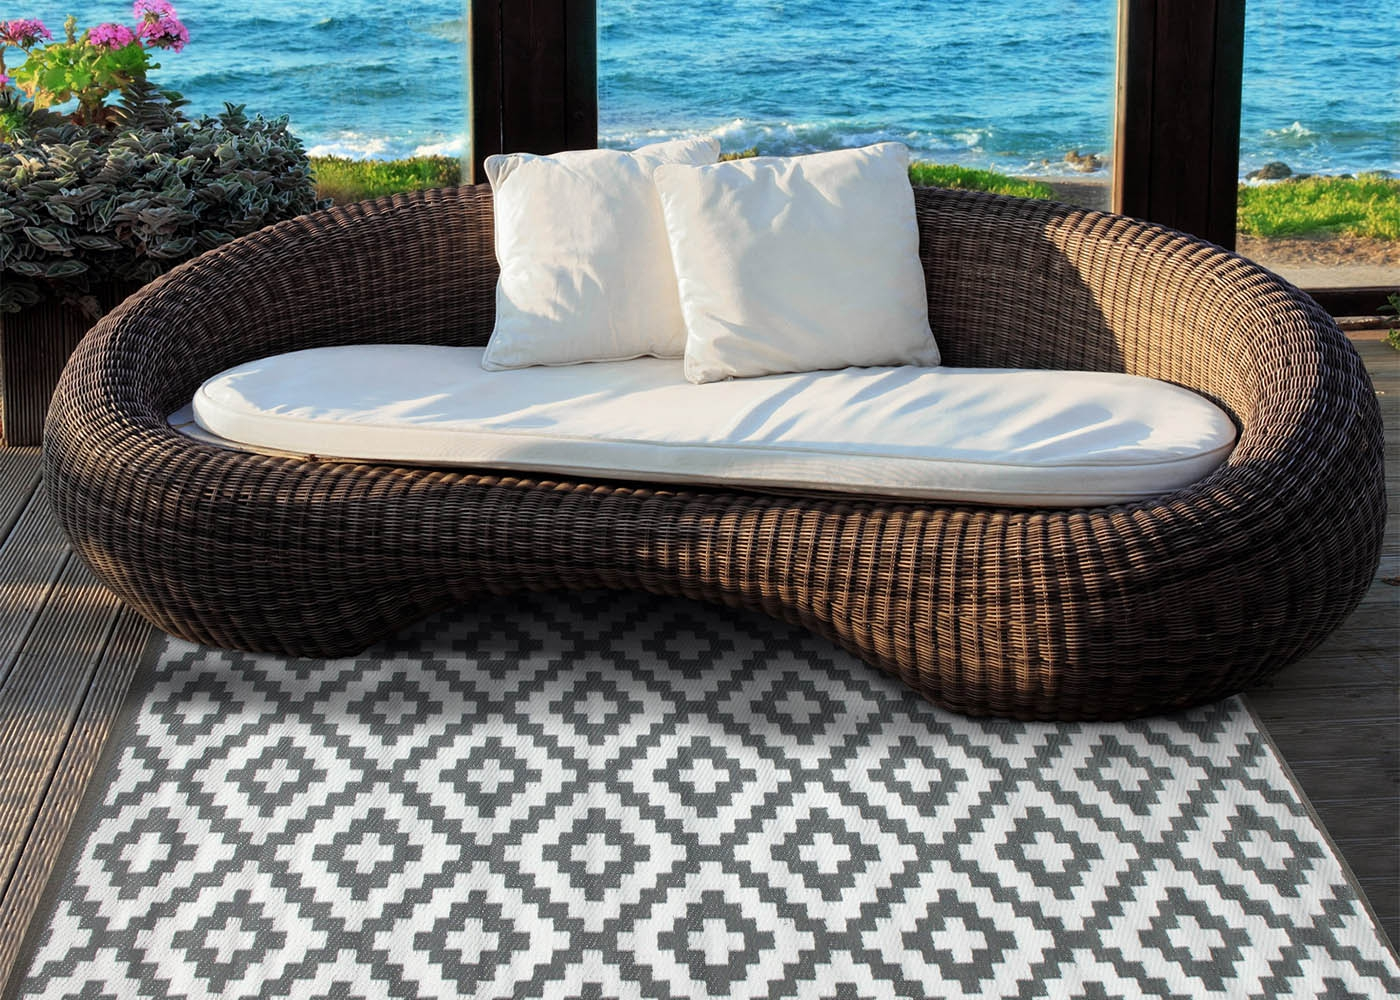 tapis outdoor indoor motif losange 5 couleurs chez ksl living. Black Bedroom Furniture Sets. Home Design Ideas